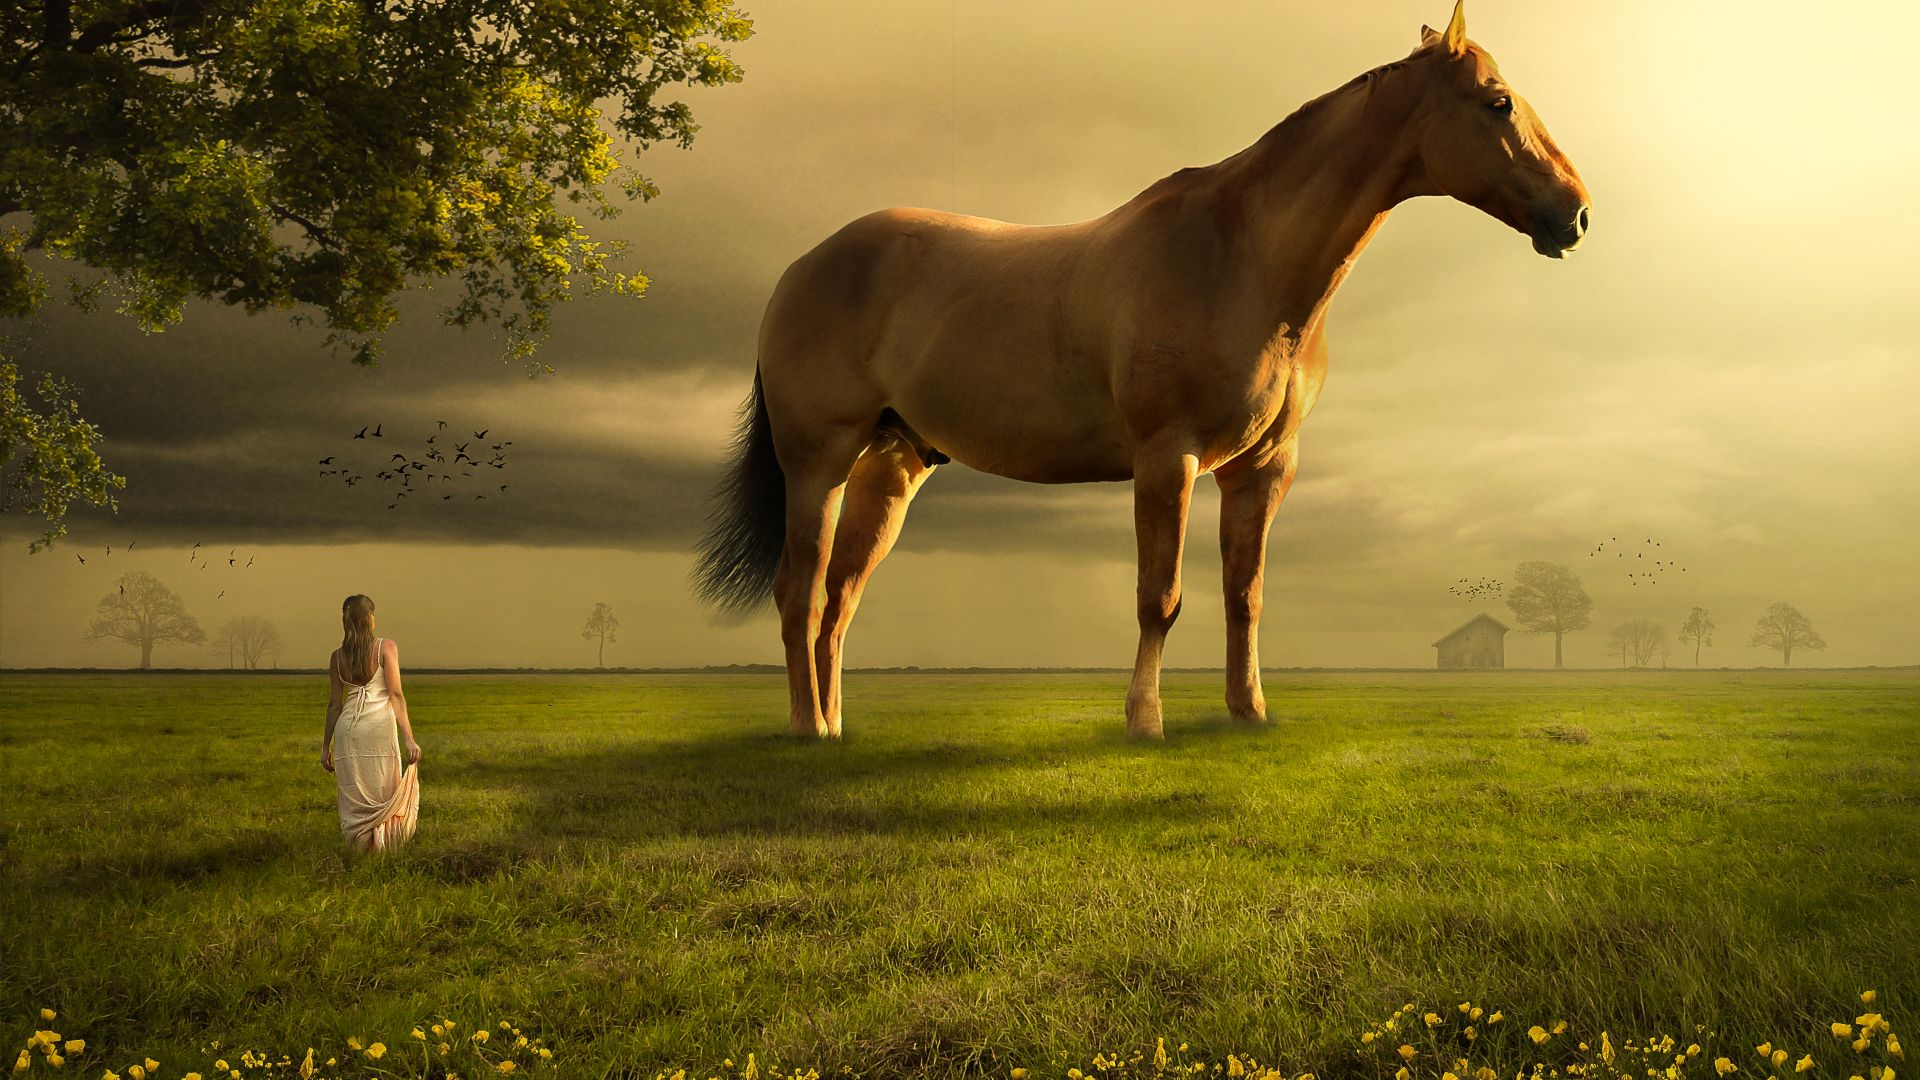 Dream Horse Image Wallpaper